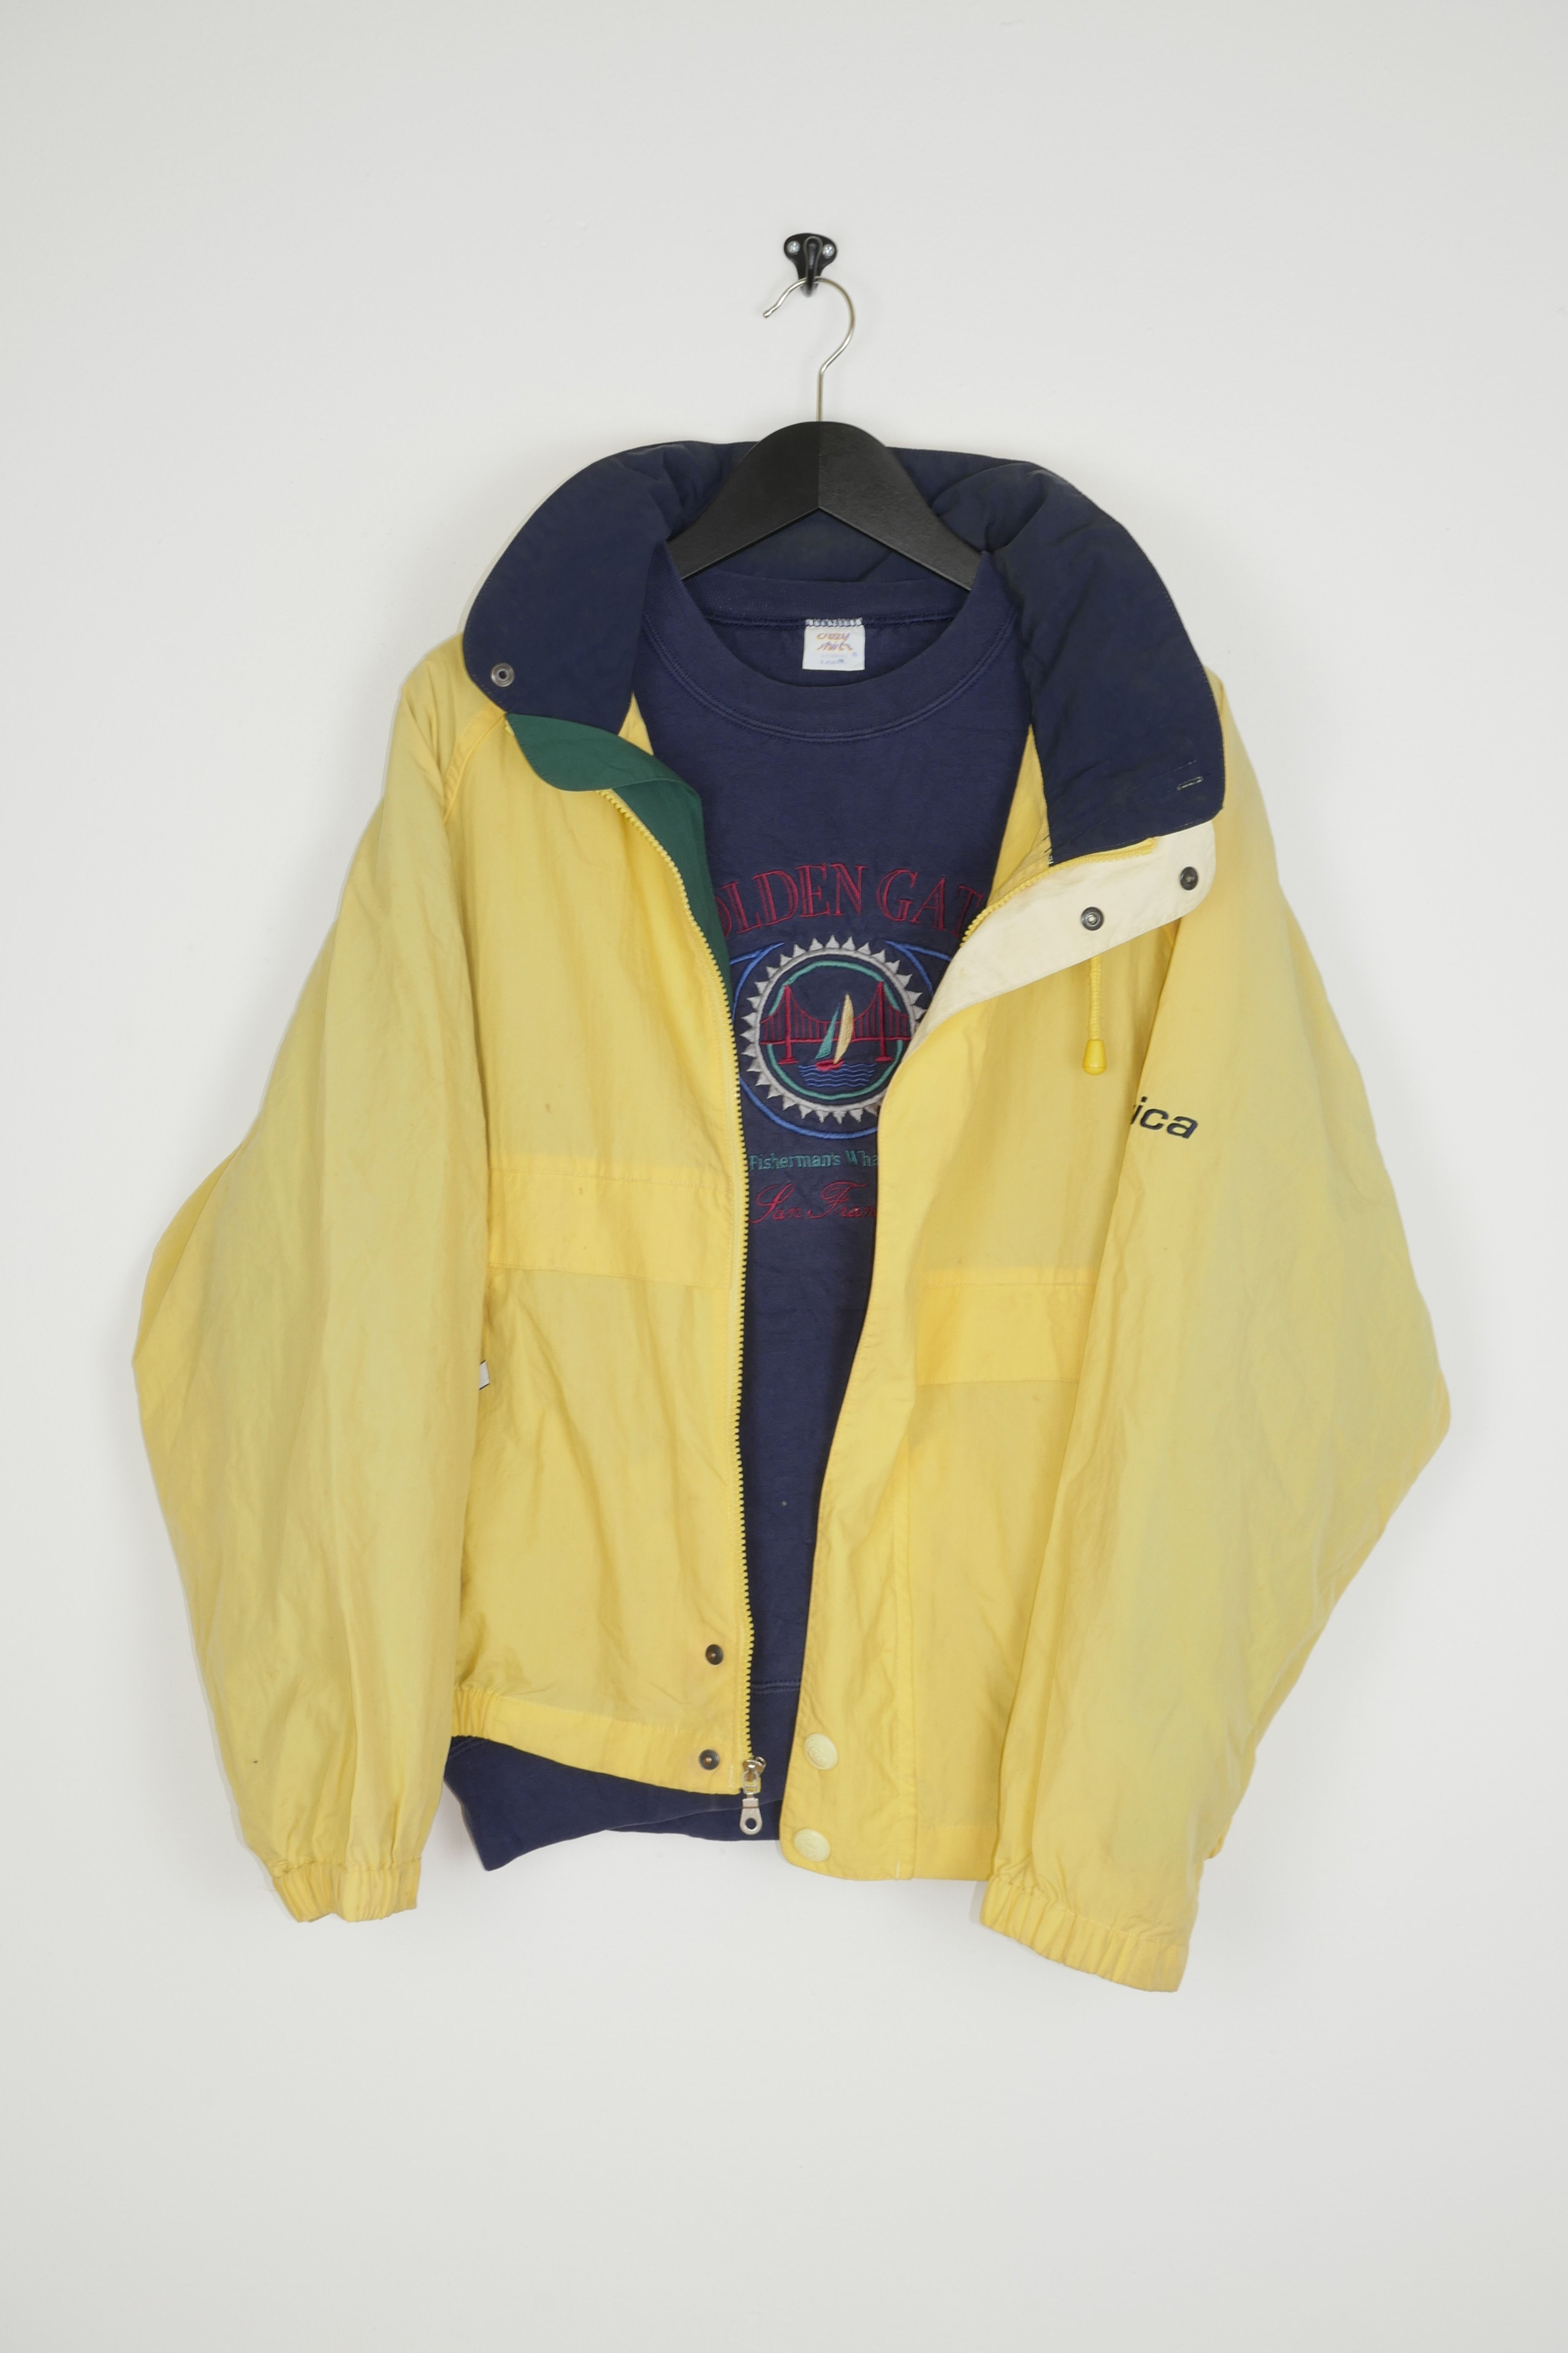 vintage nautica jacket and embroidered golden gate sweater